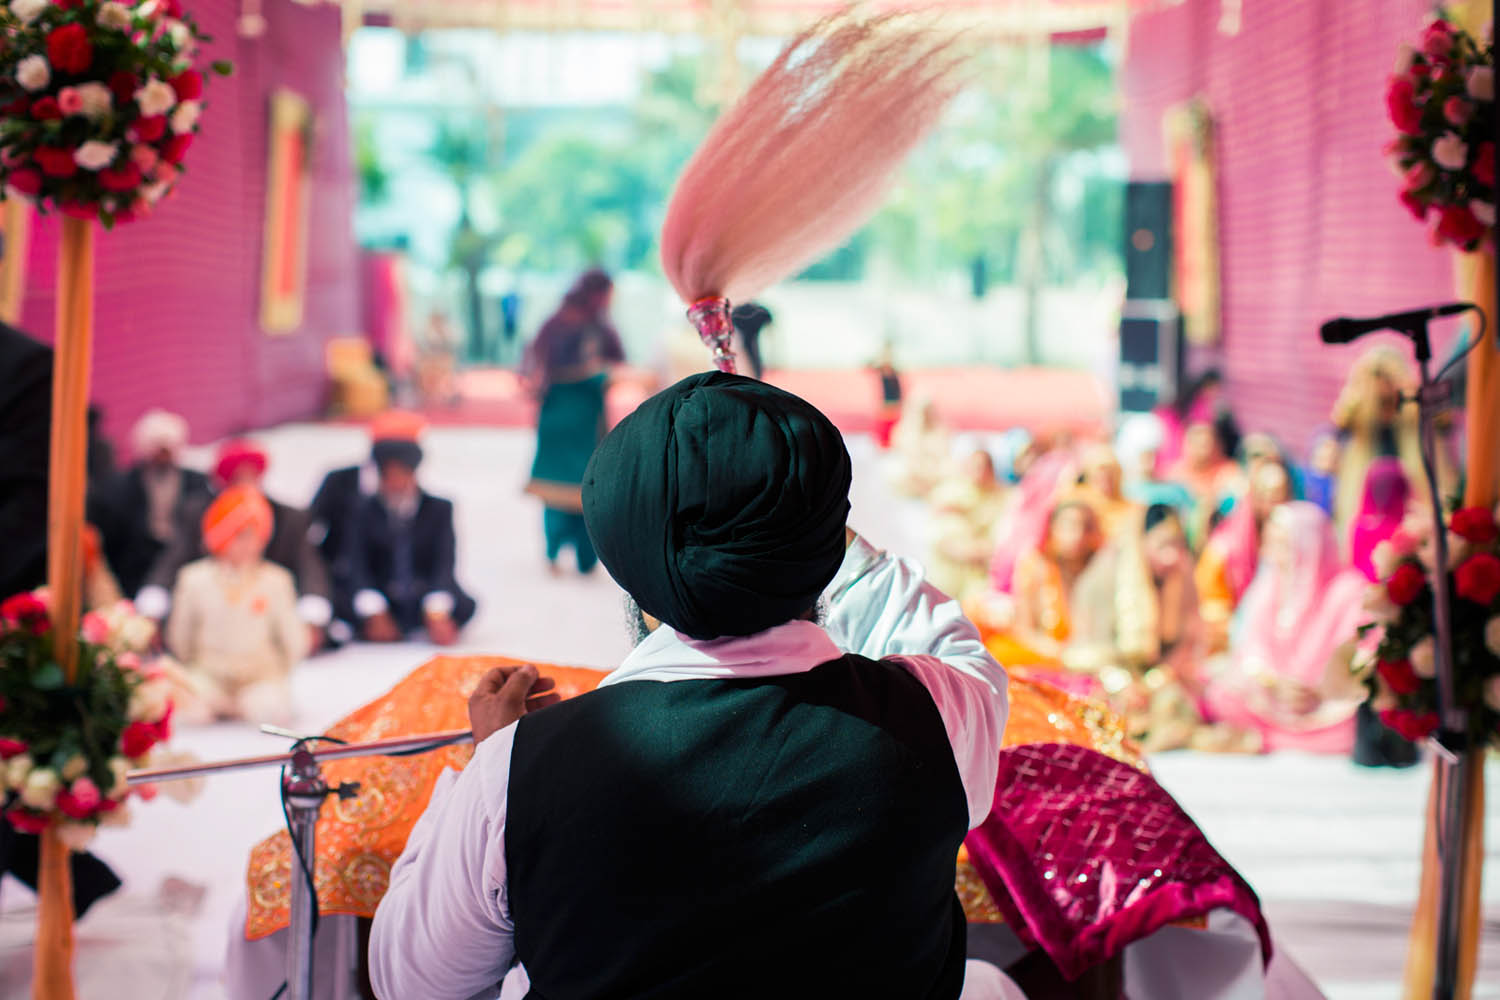 punjab_wedding53.jpg